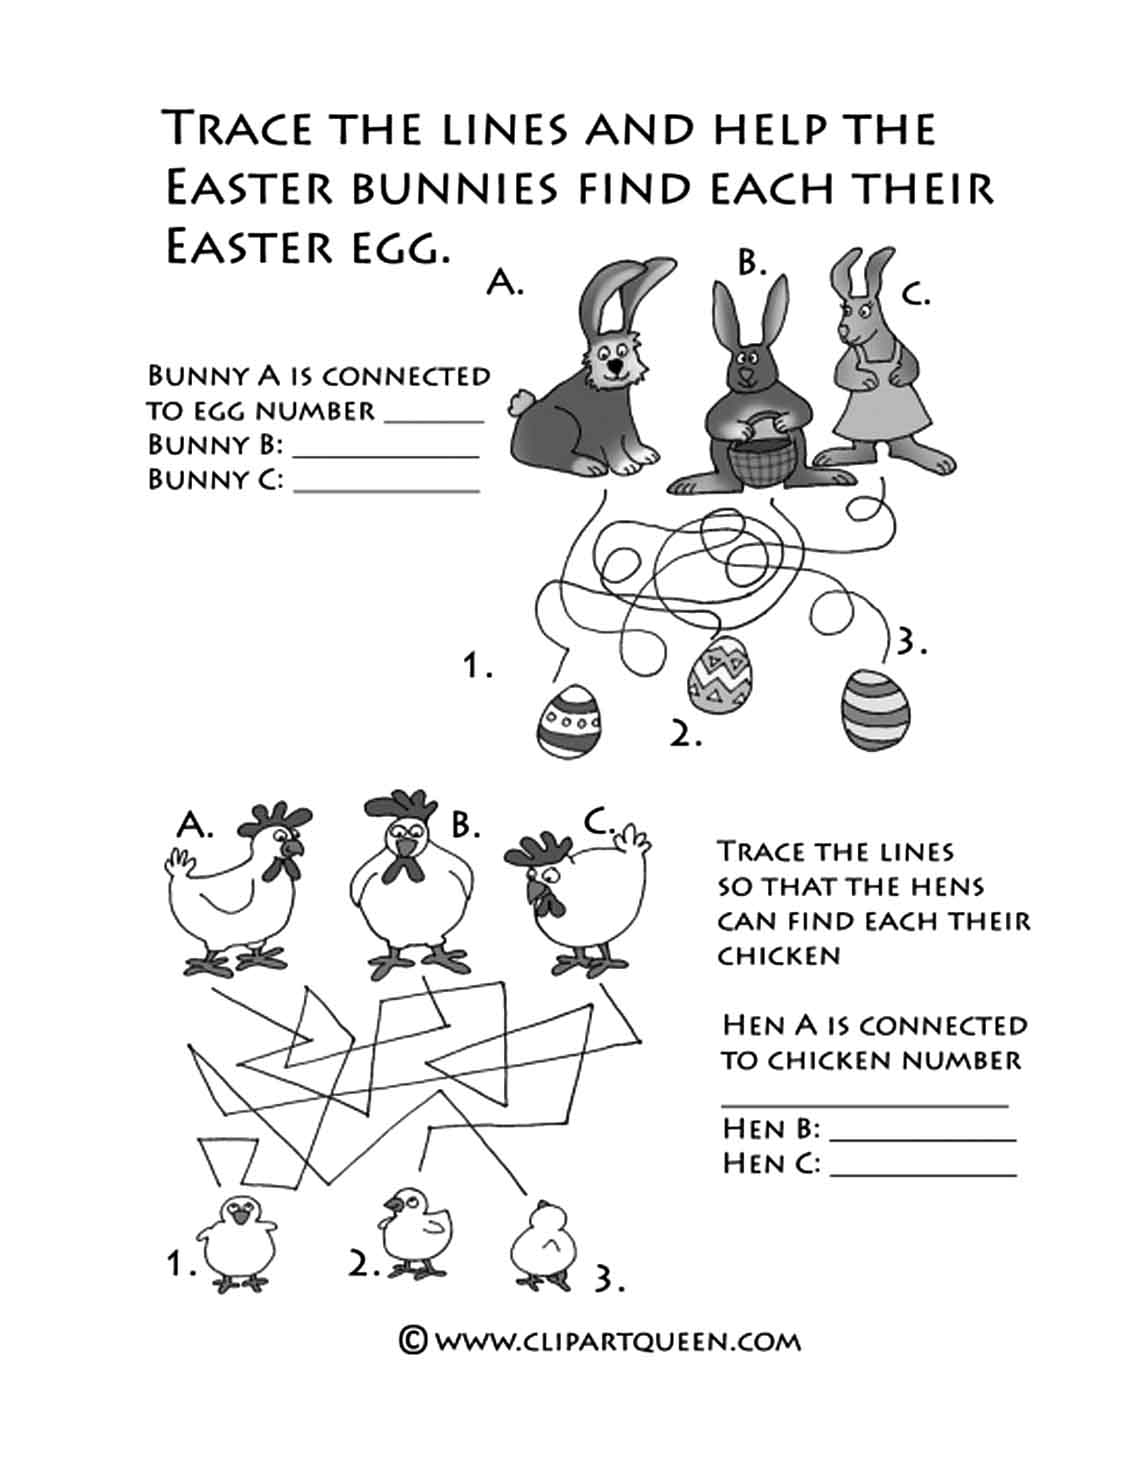 Easter printables activities helping bunnies